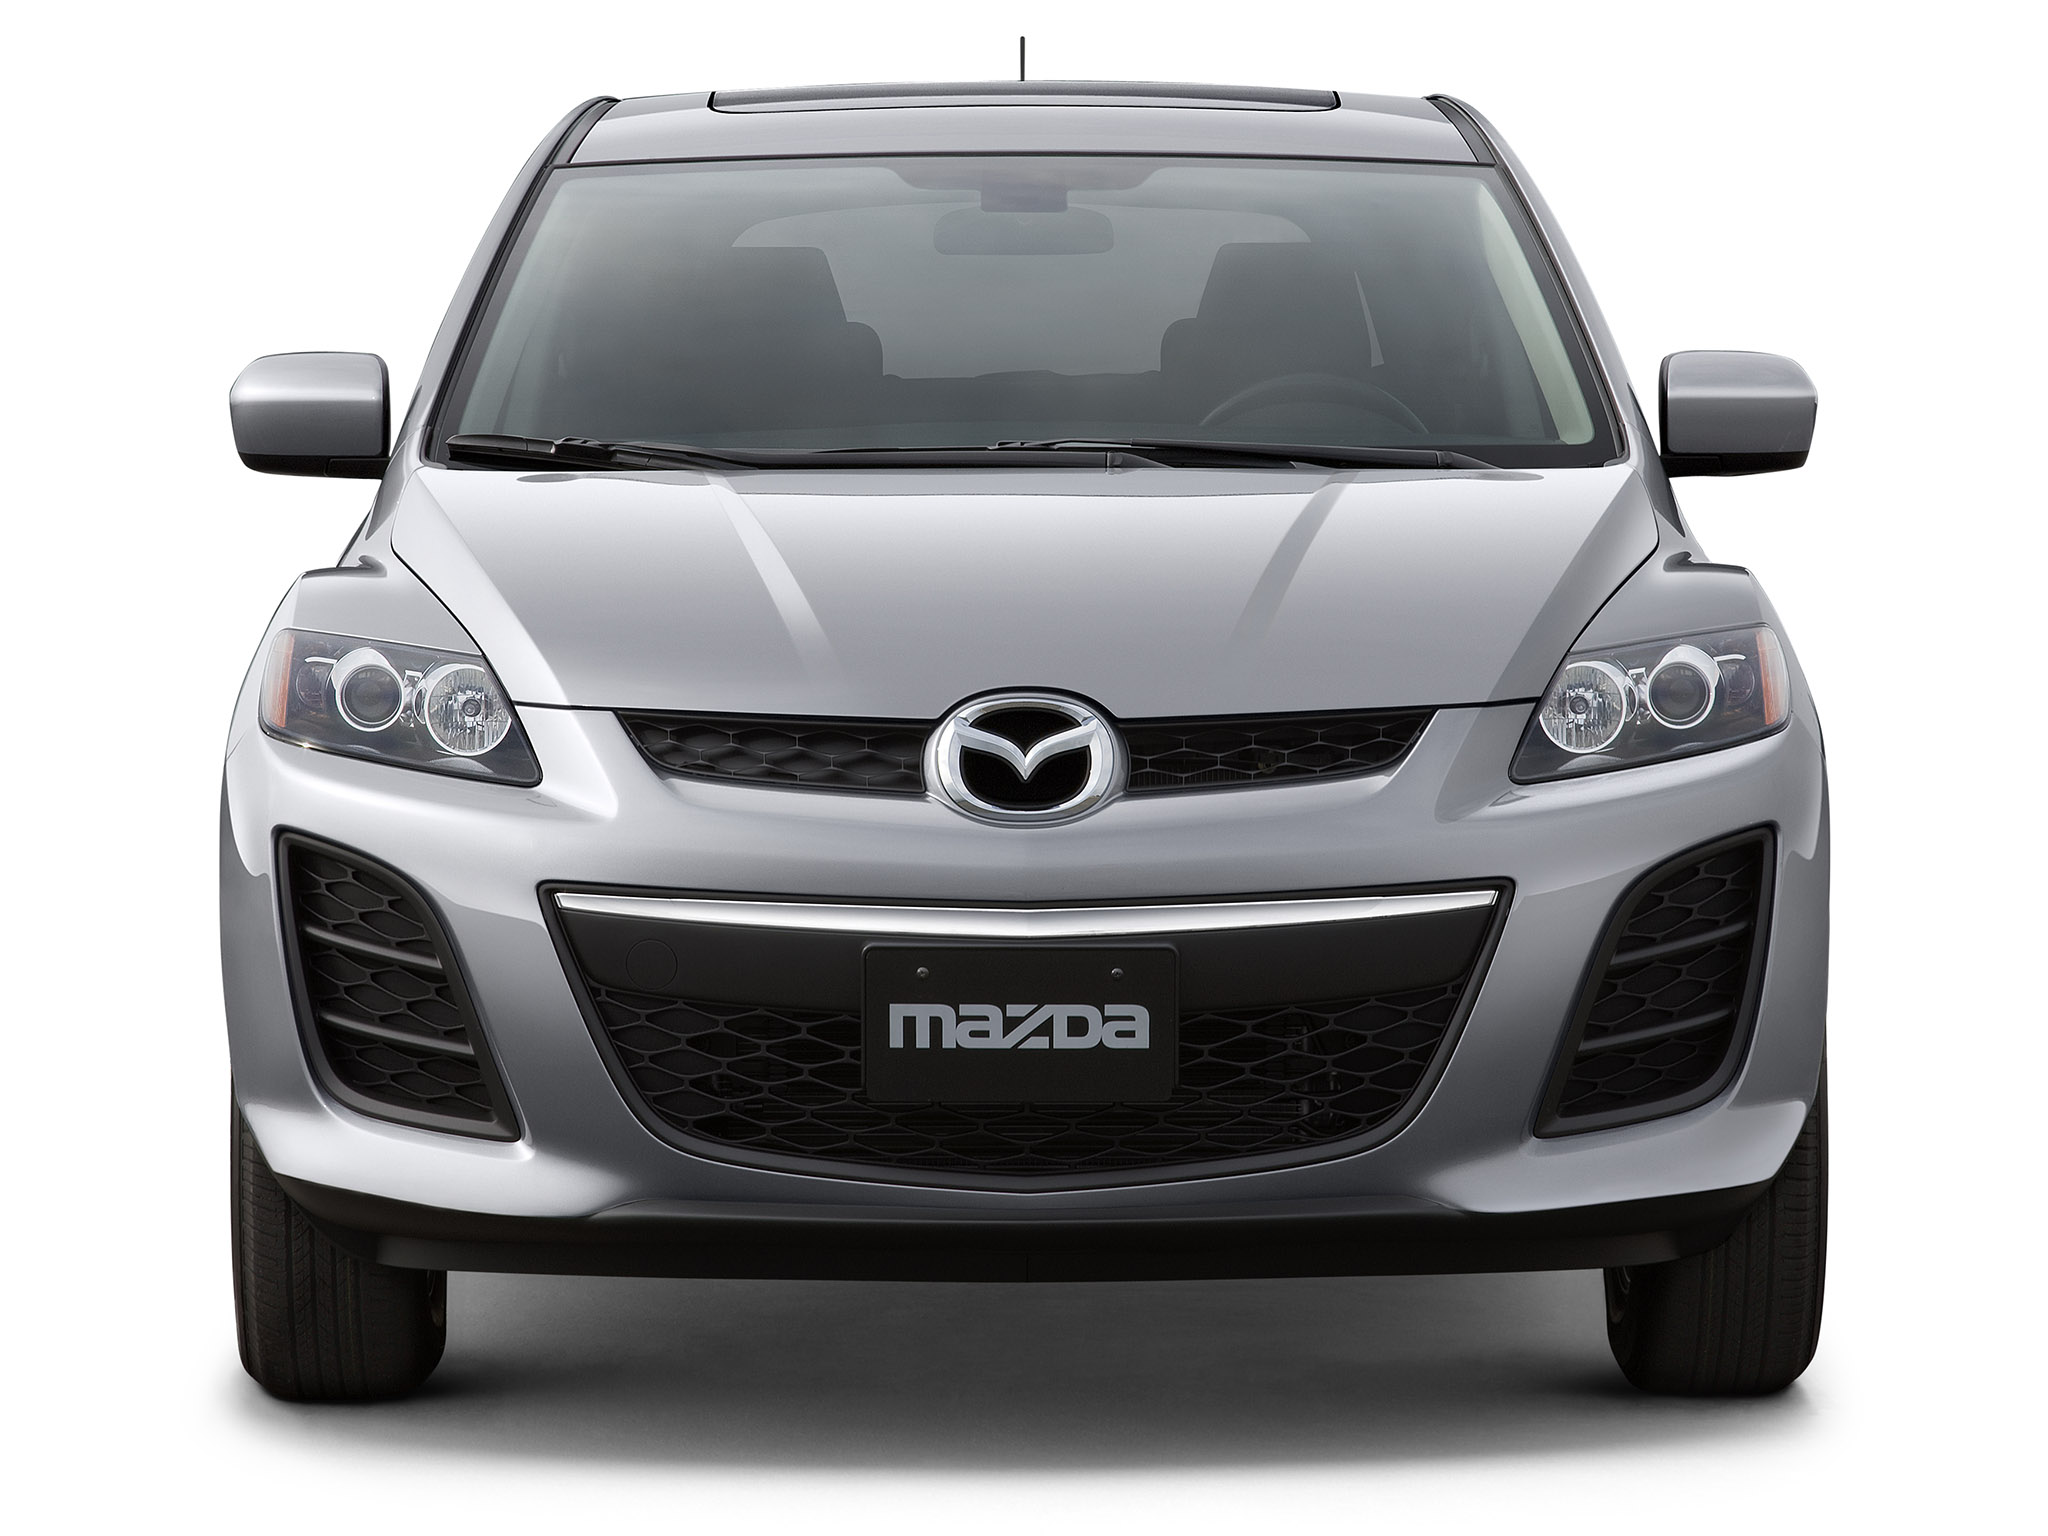 mazda cx 7 2009 review amazing pictures and images. Black Bedroom Furniture Sets. Home Design Ideas